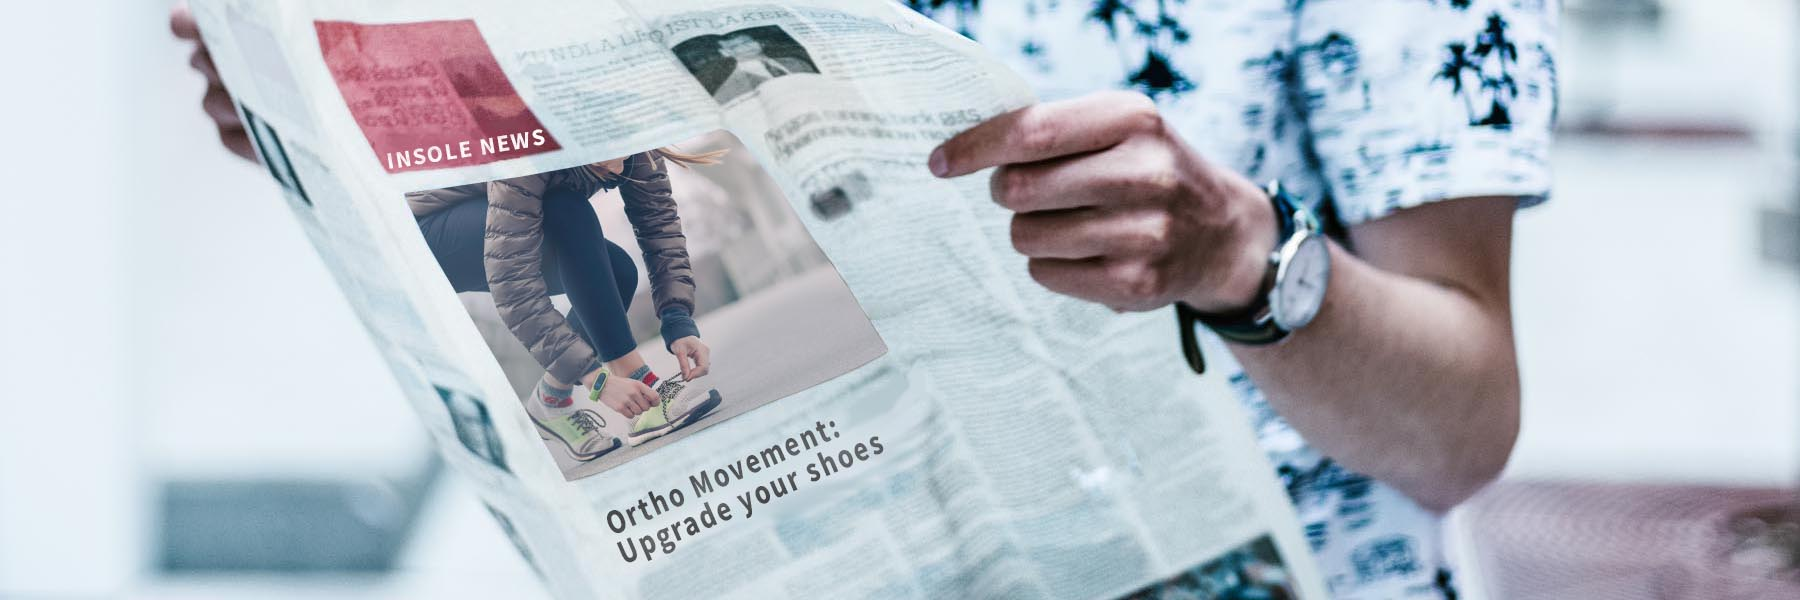 news-ortho-movement-upgrade-your-shoes